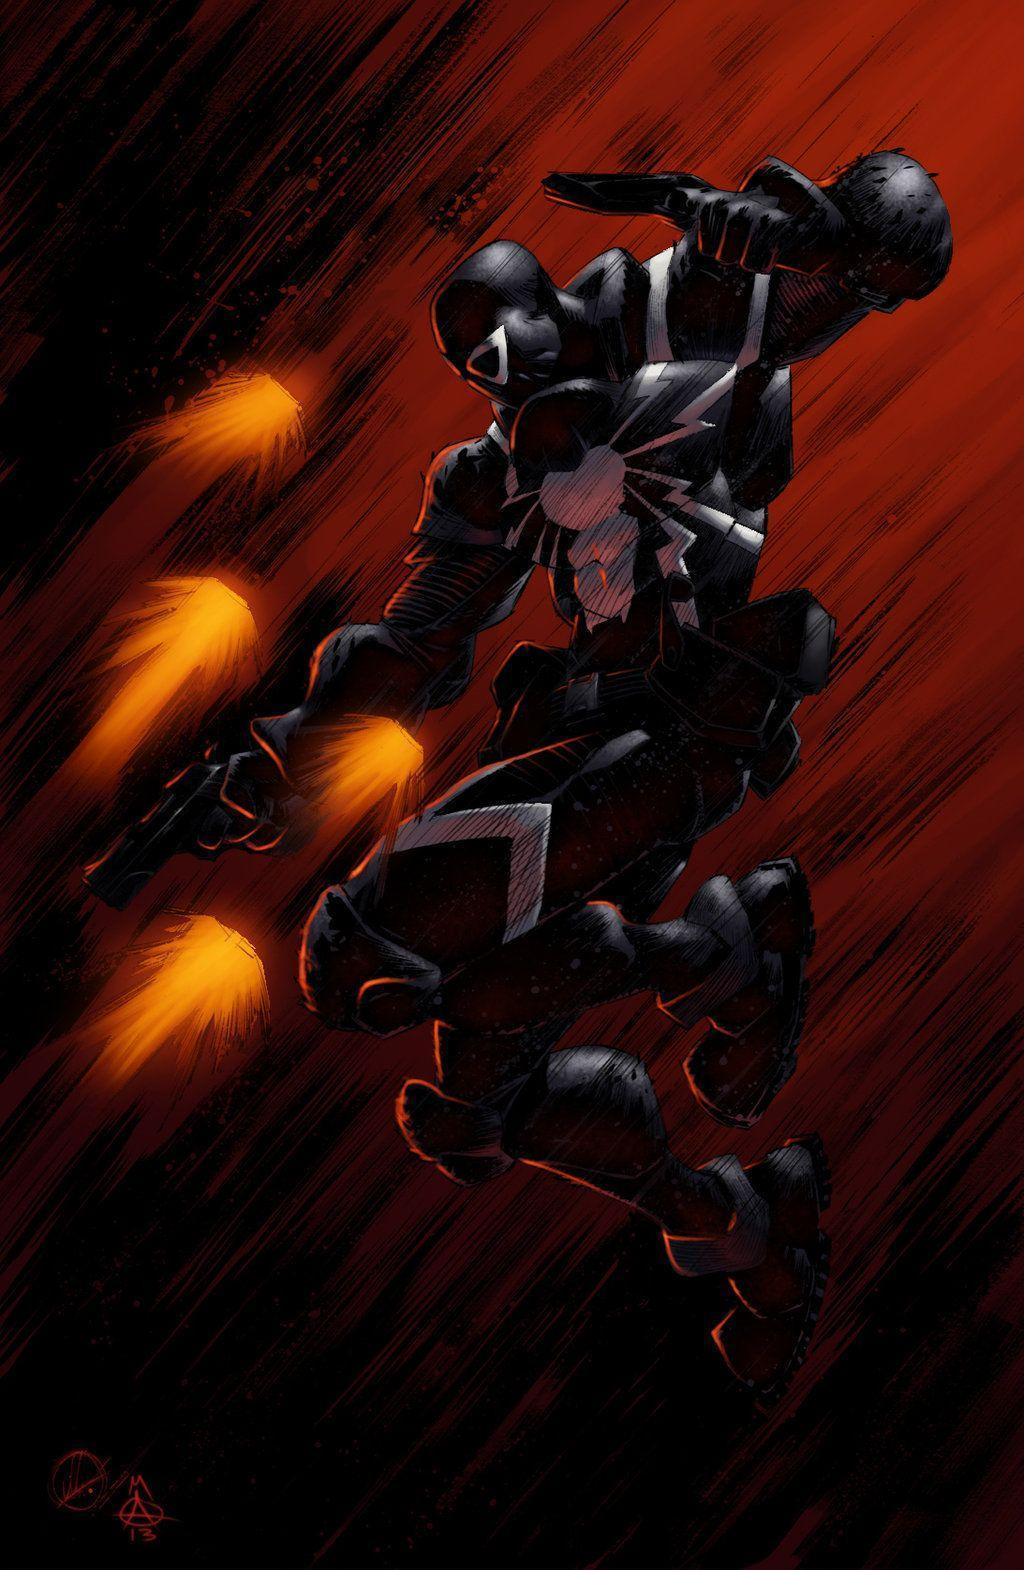 Agent Venom Iphone Wallpapers Top Free Agent Venom Iphone Backgrounds Wallpaperaccess